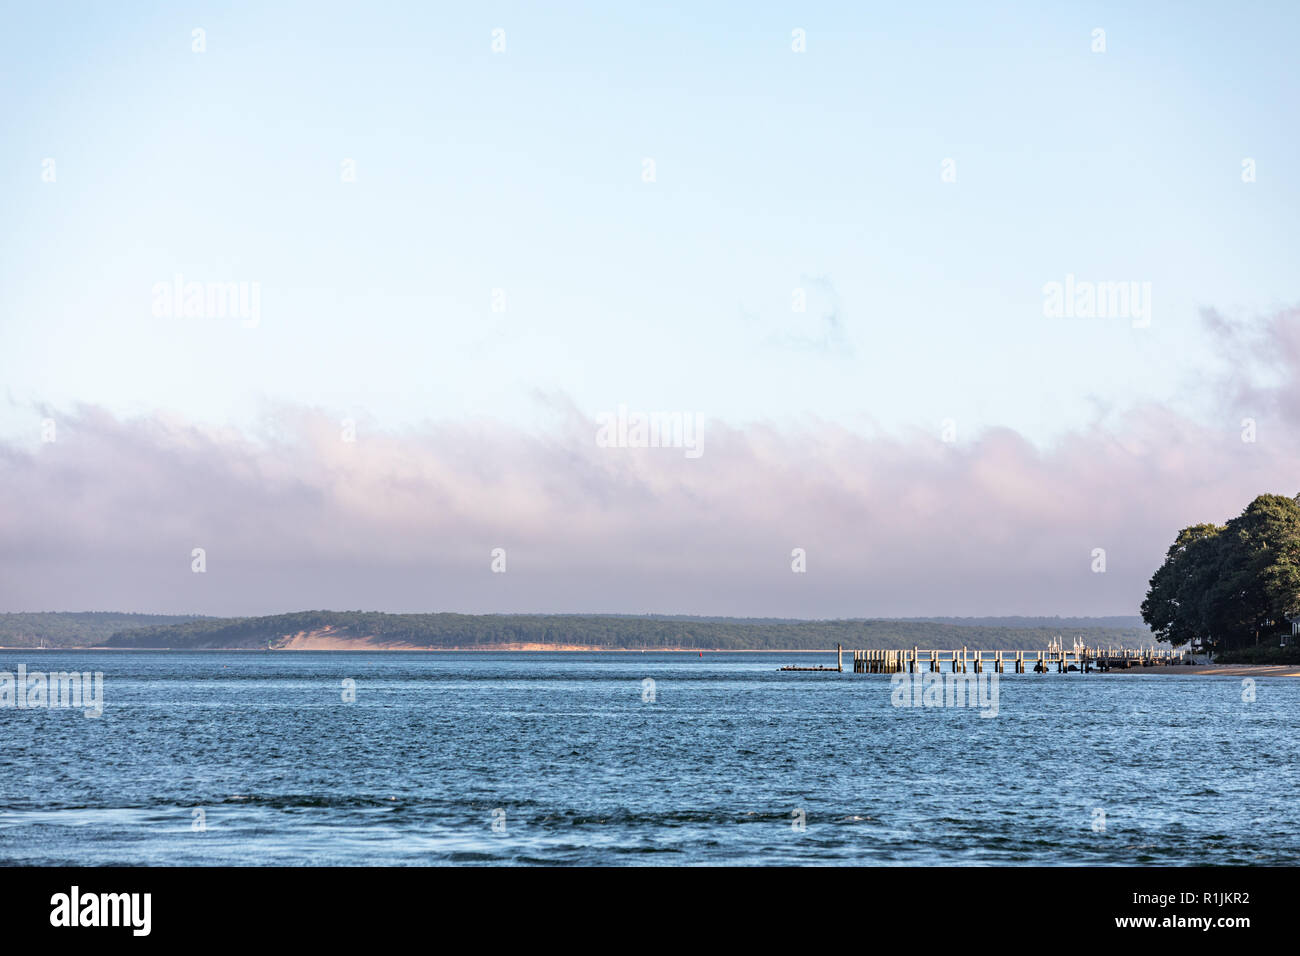 landscape with water featuring parts of the Peconic River, Sag Harbor Bay, North Haven, East Hampton and a dock - Stock Image